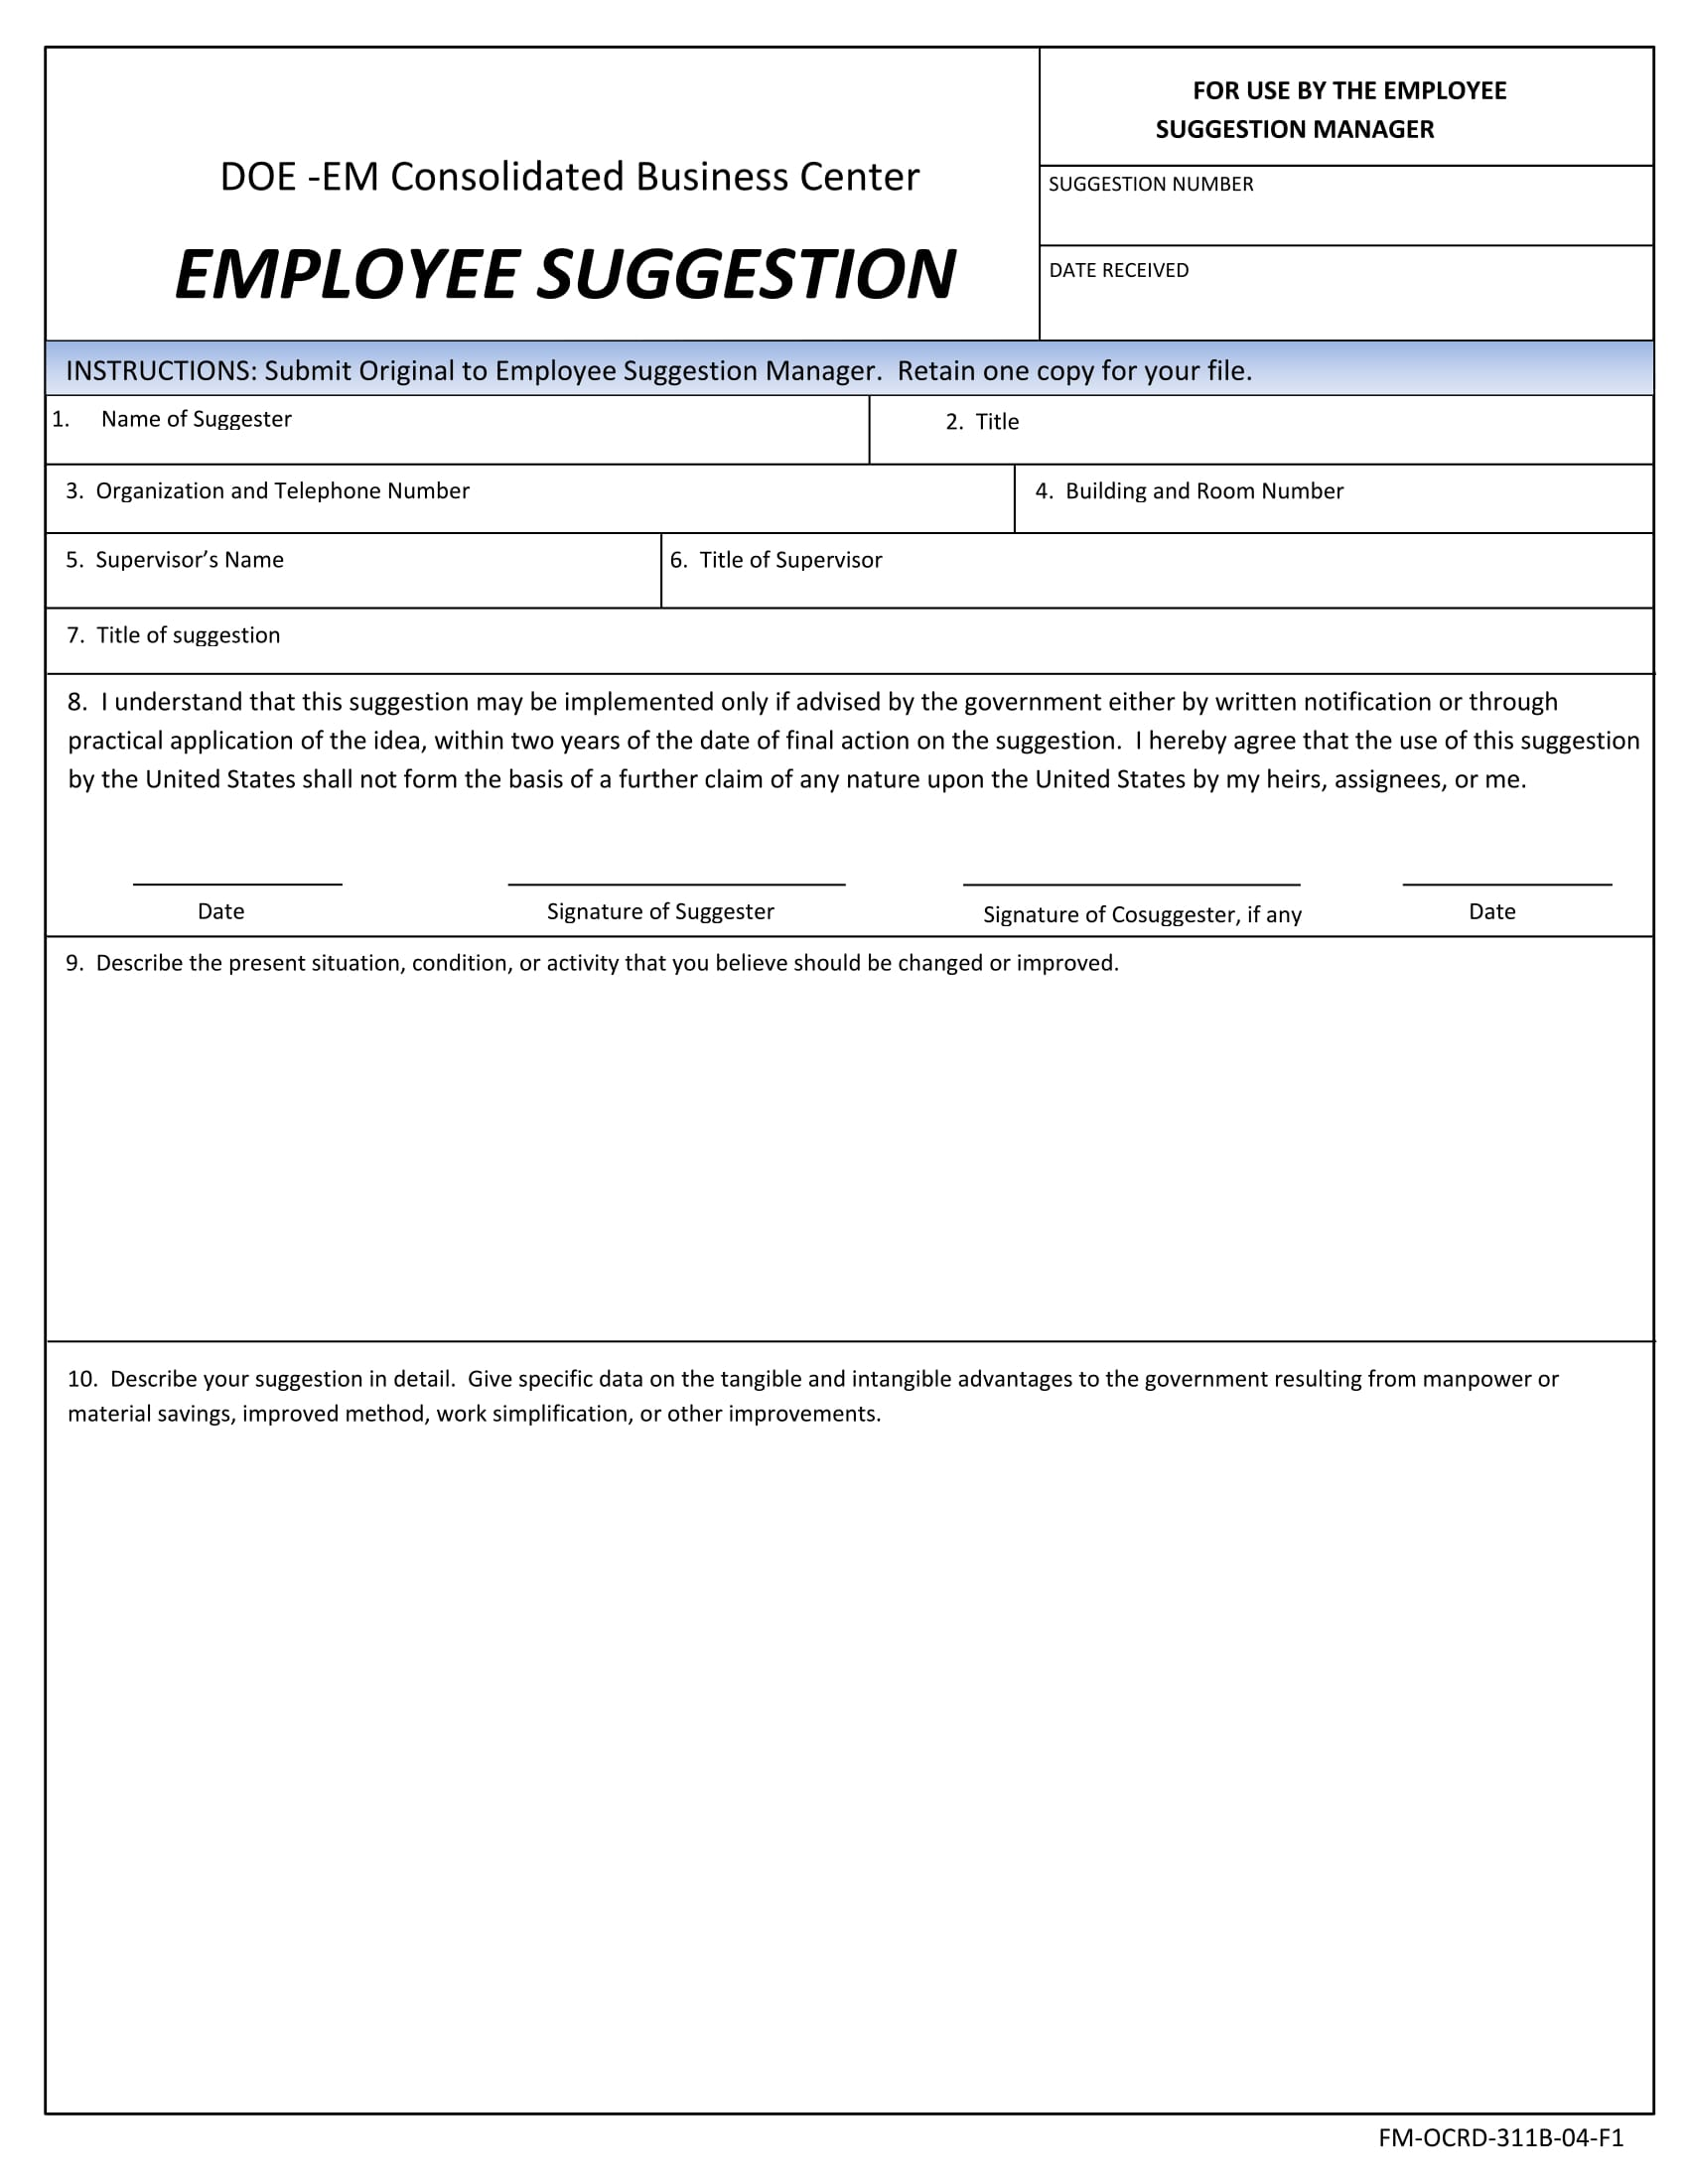 employee suggestion manager suggestion form 1